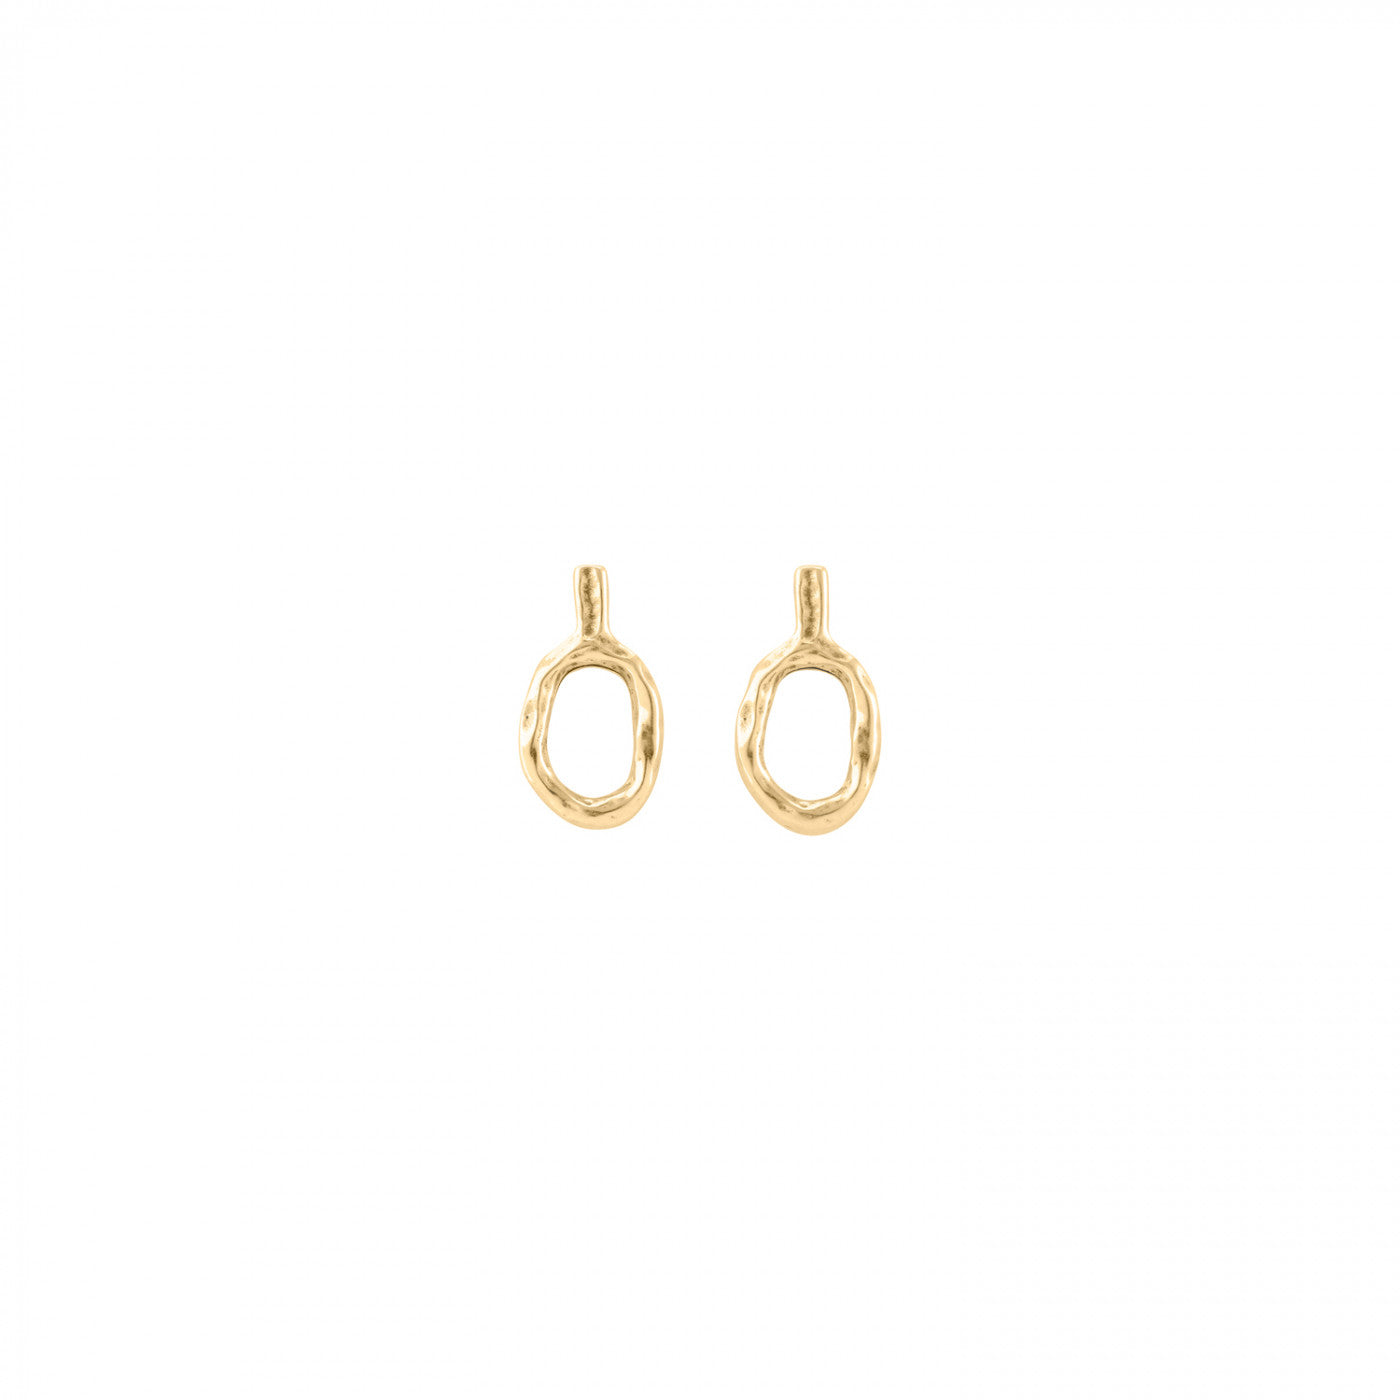 Uno de50 Sheet Earrings